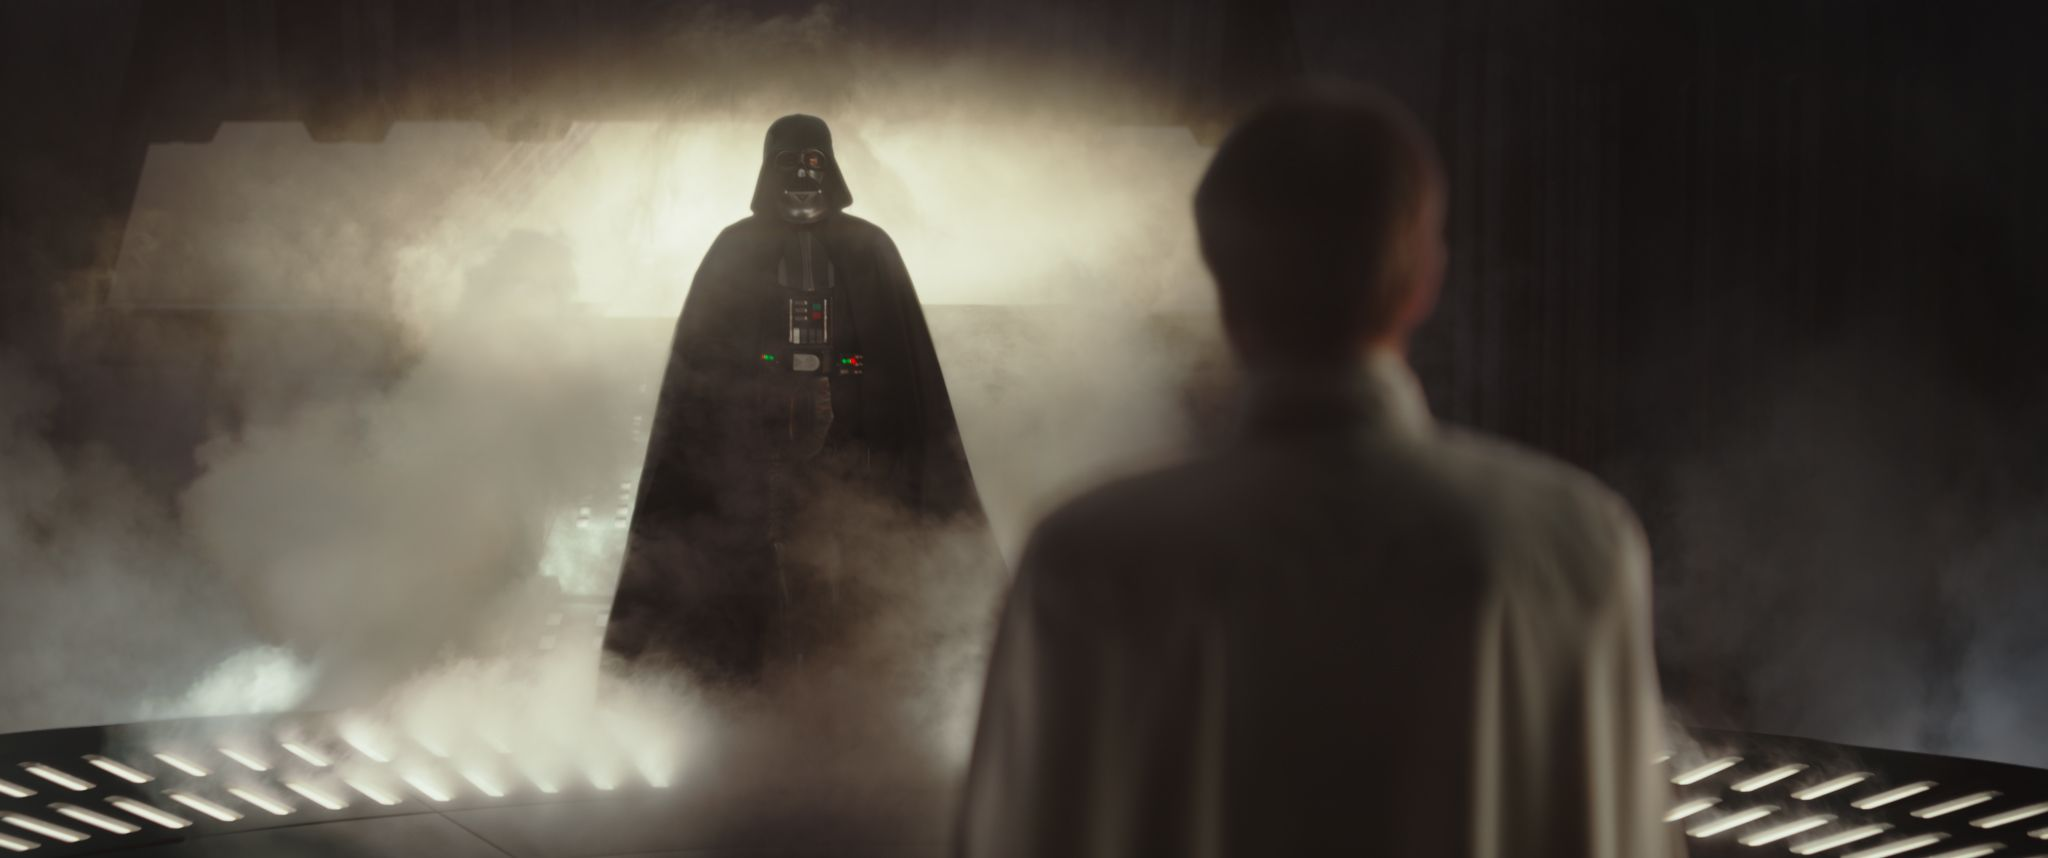 Rogue One Images Showcase Darth Vader And More Collider